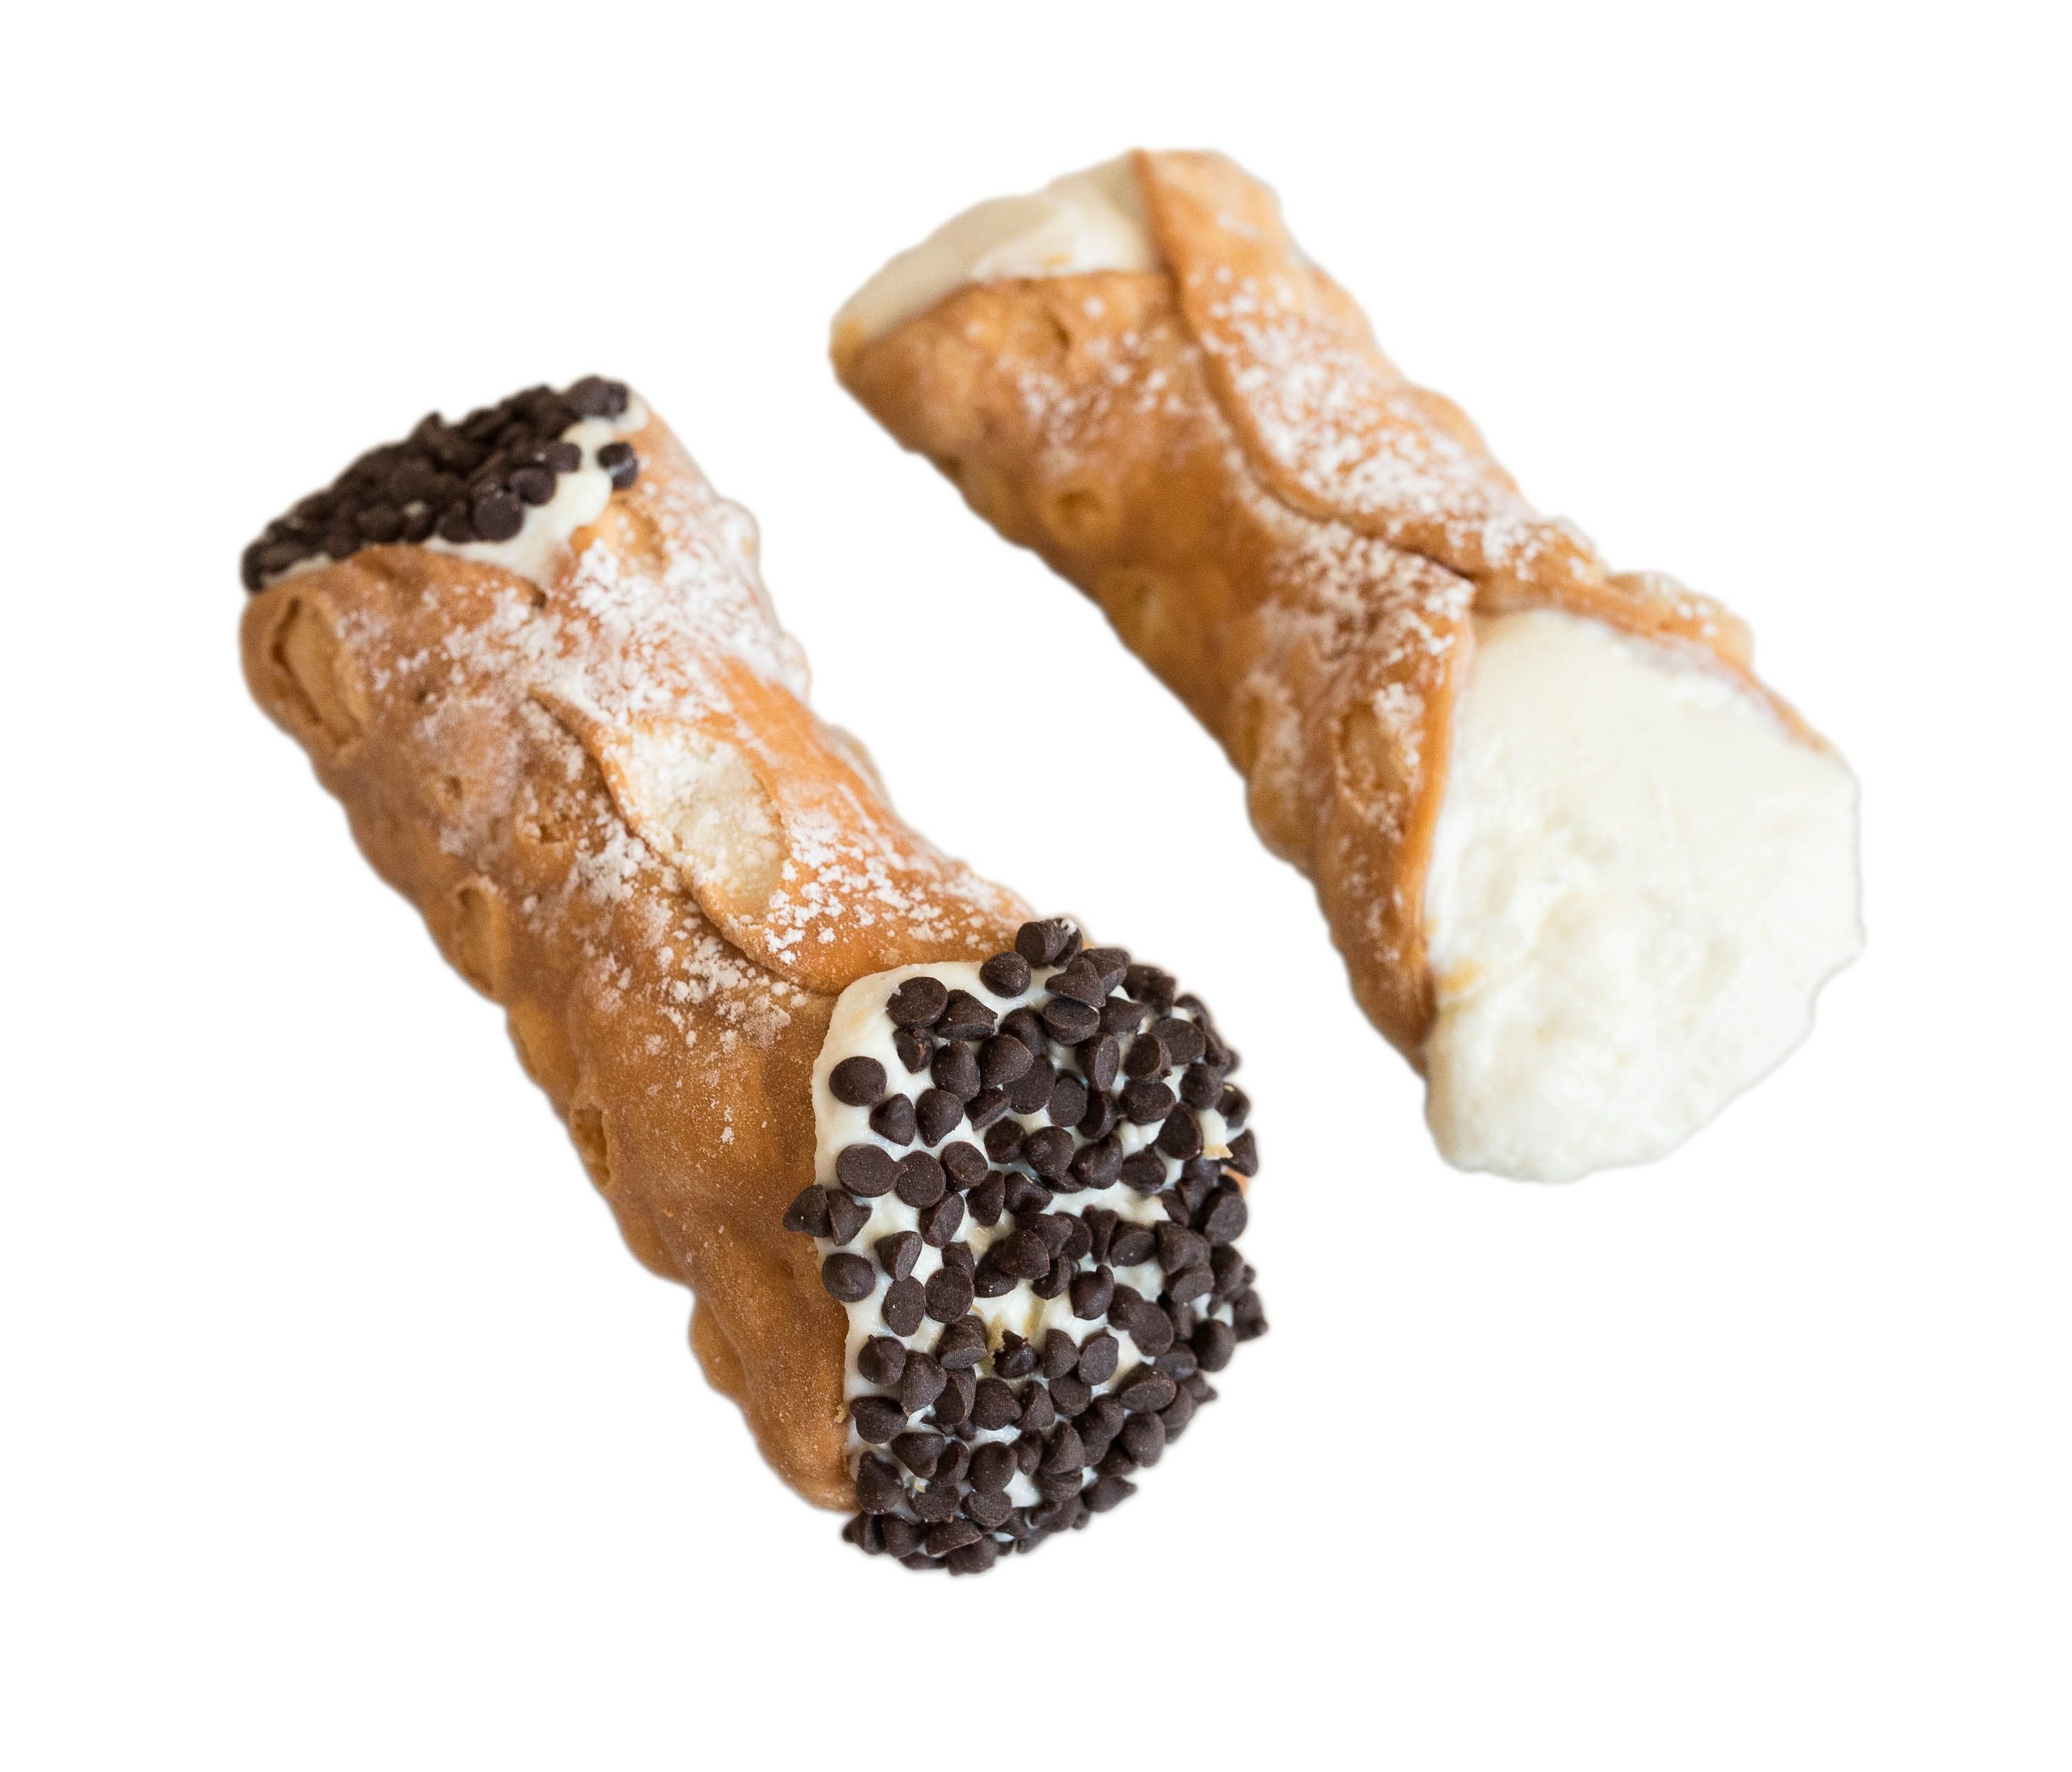 Take the Cannoli: One Pastry's Rise From Sicilian Treat to ...